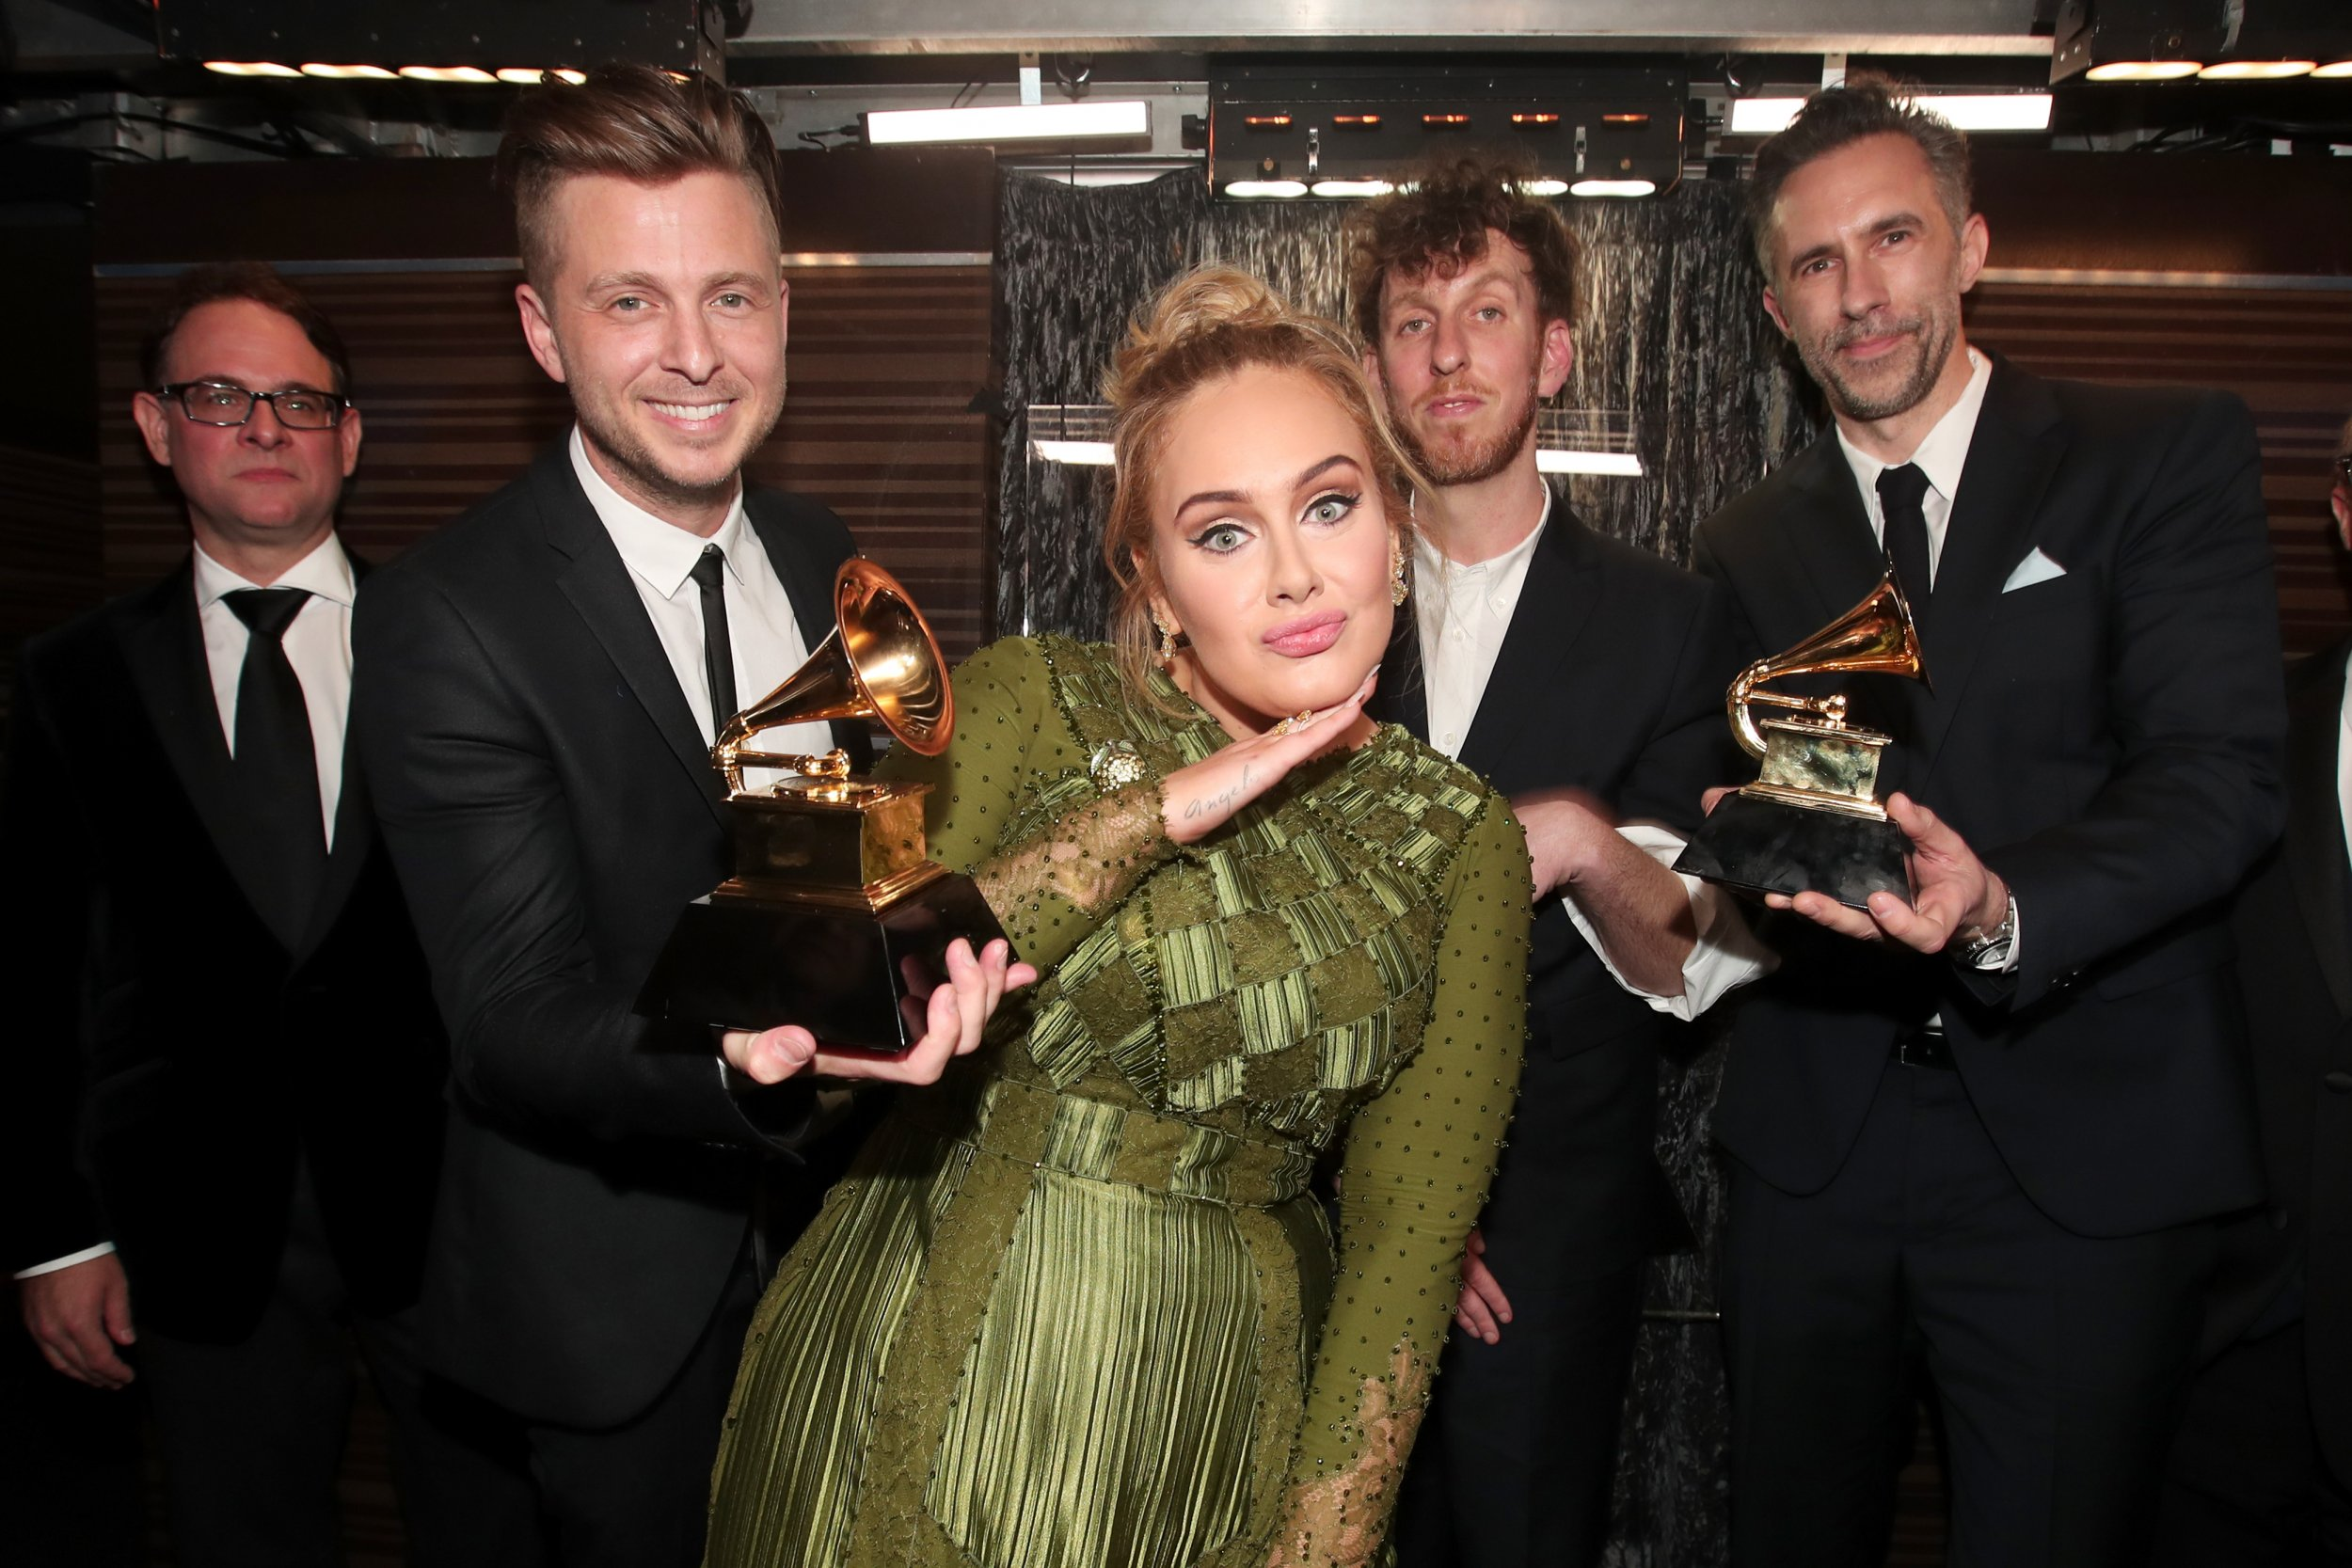 Adele and Ryan Tedder celebrate Grammy win